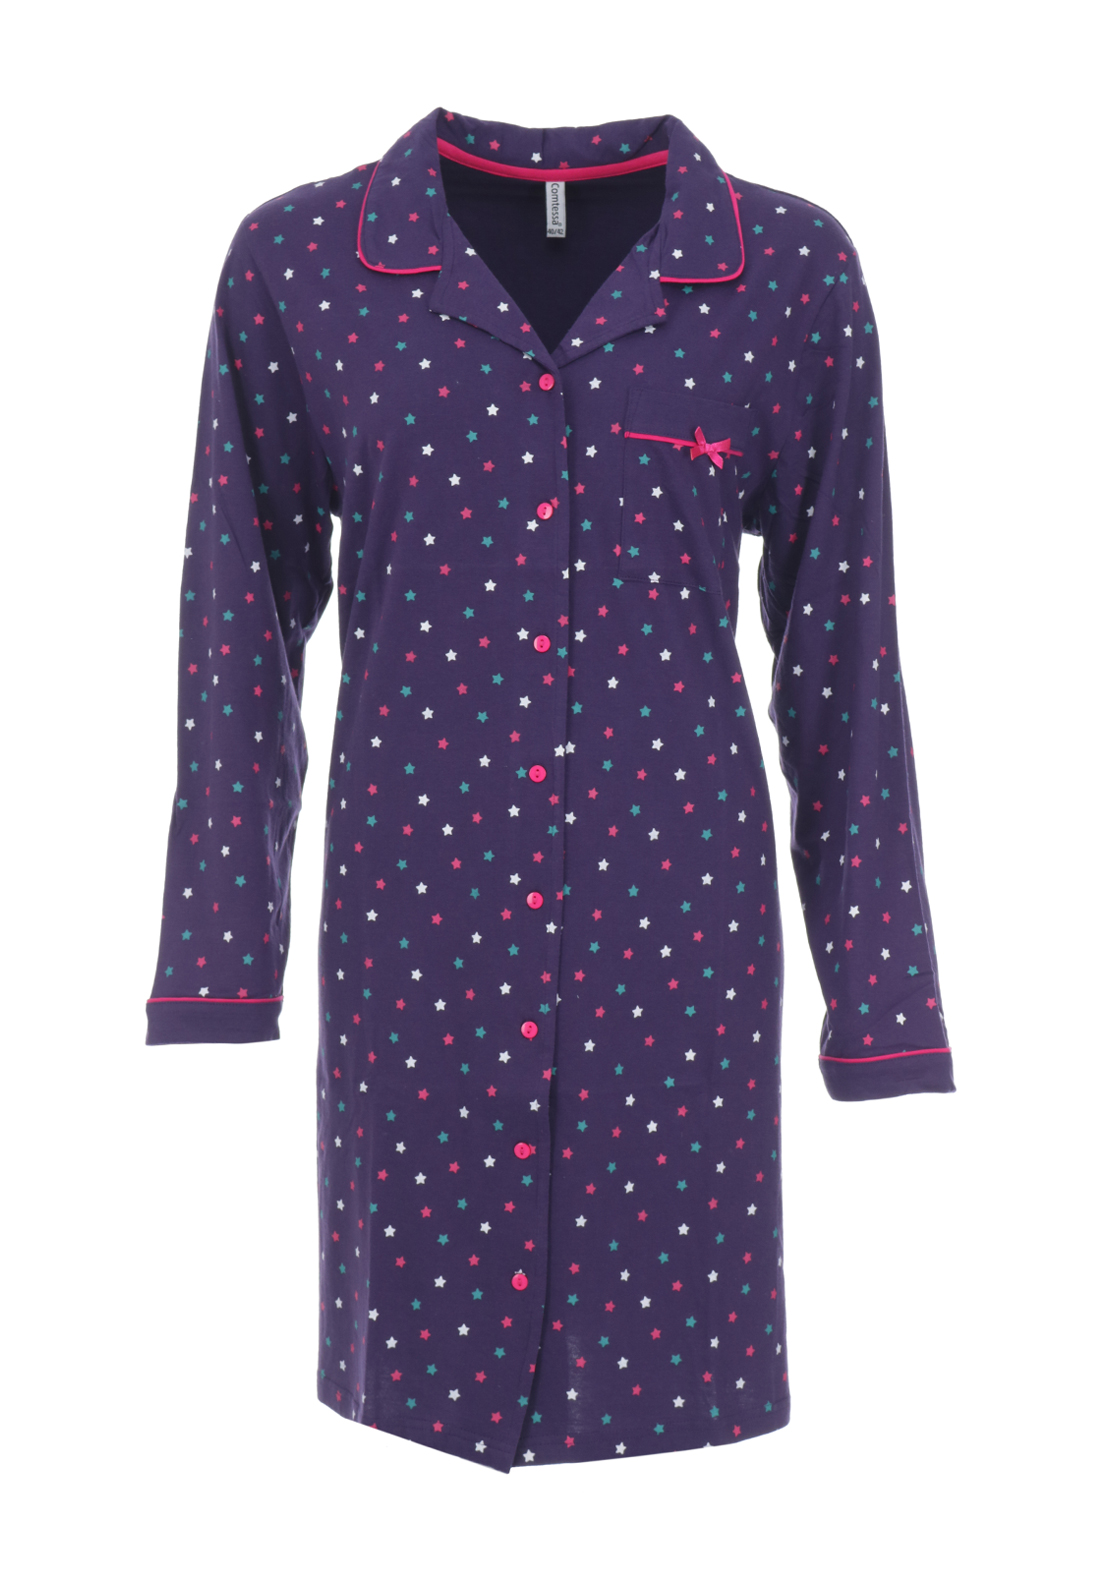 Comtessa Star Print Nightdress, Purple